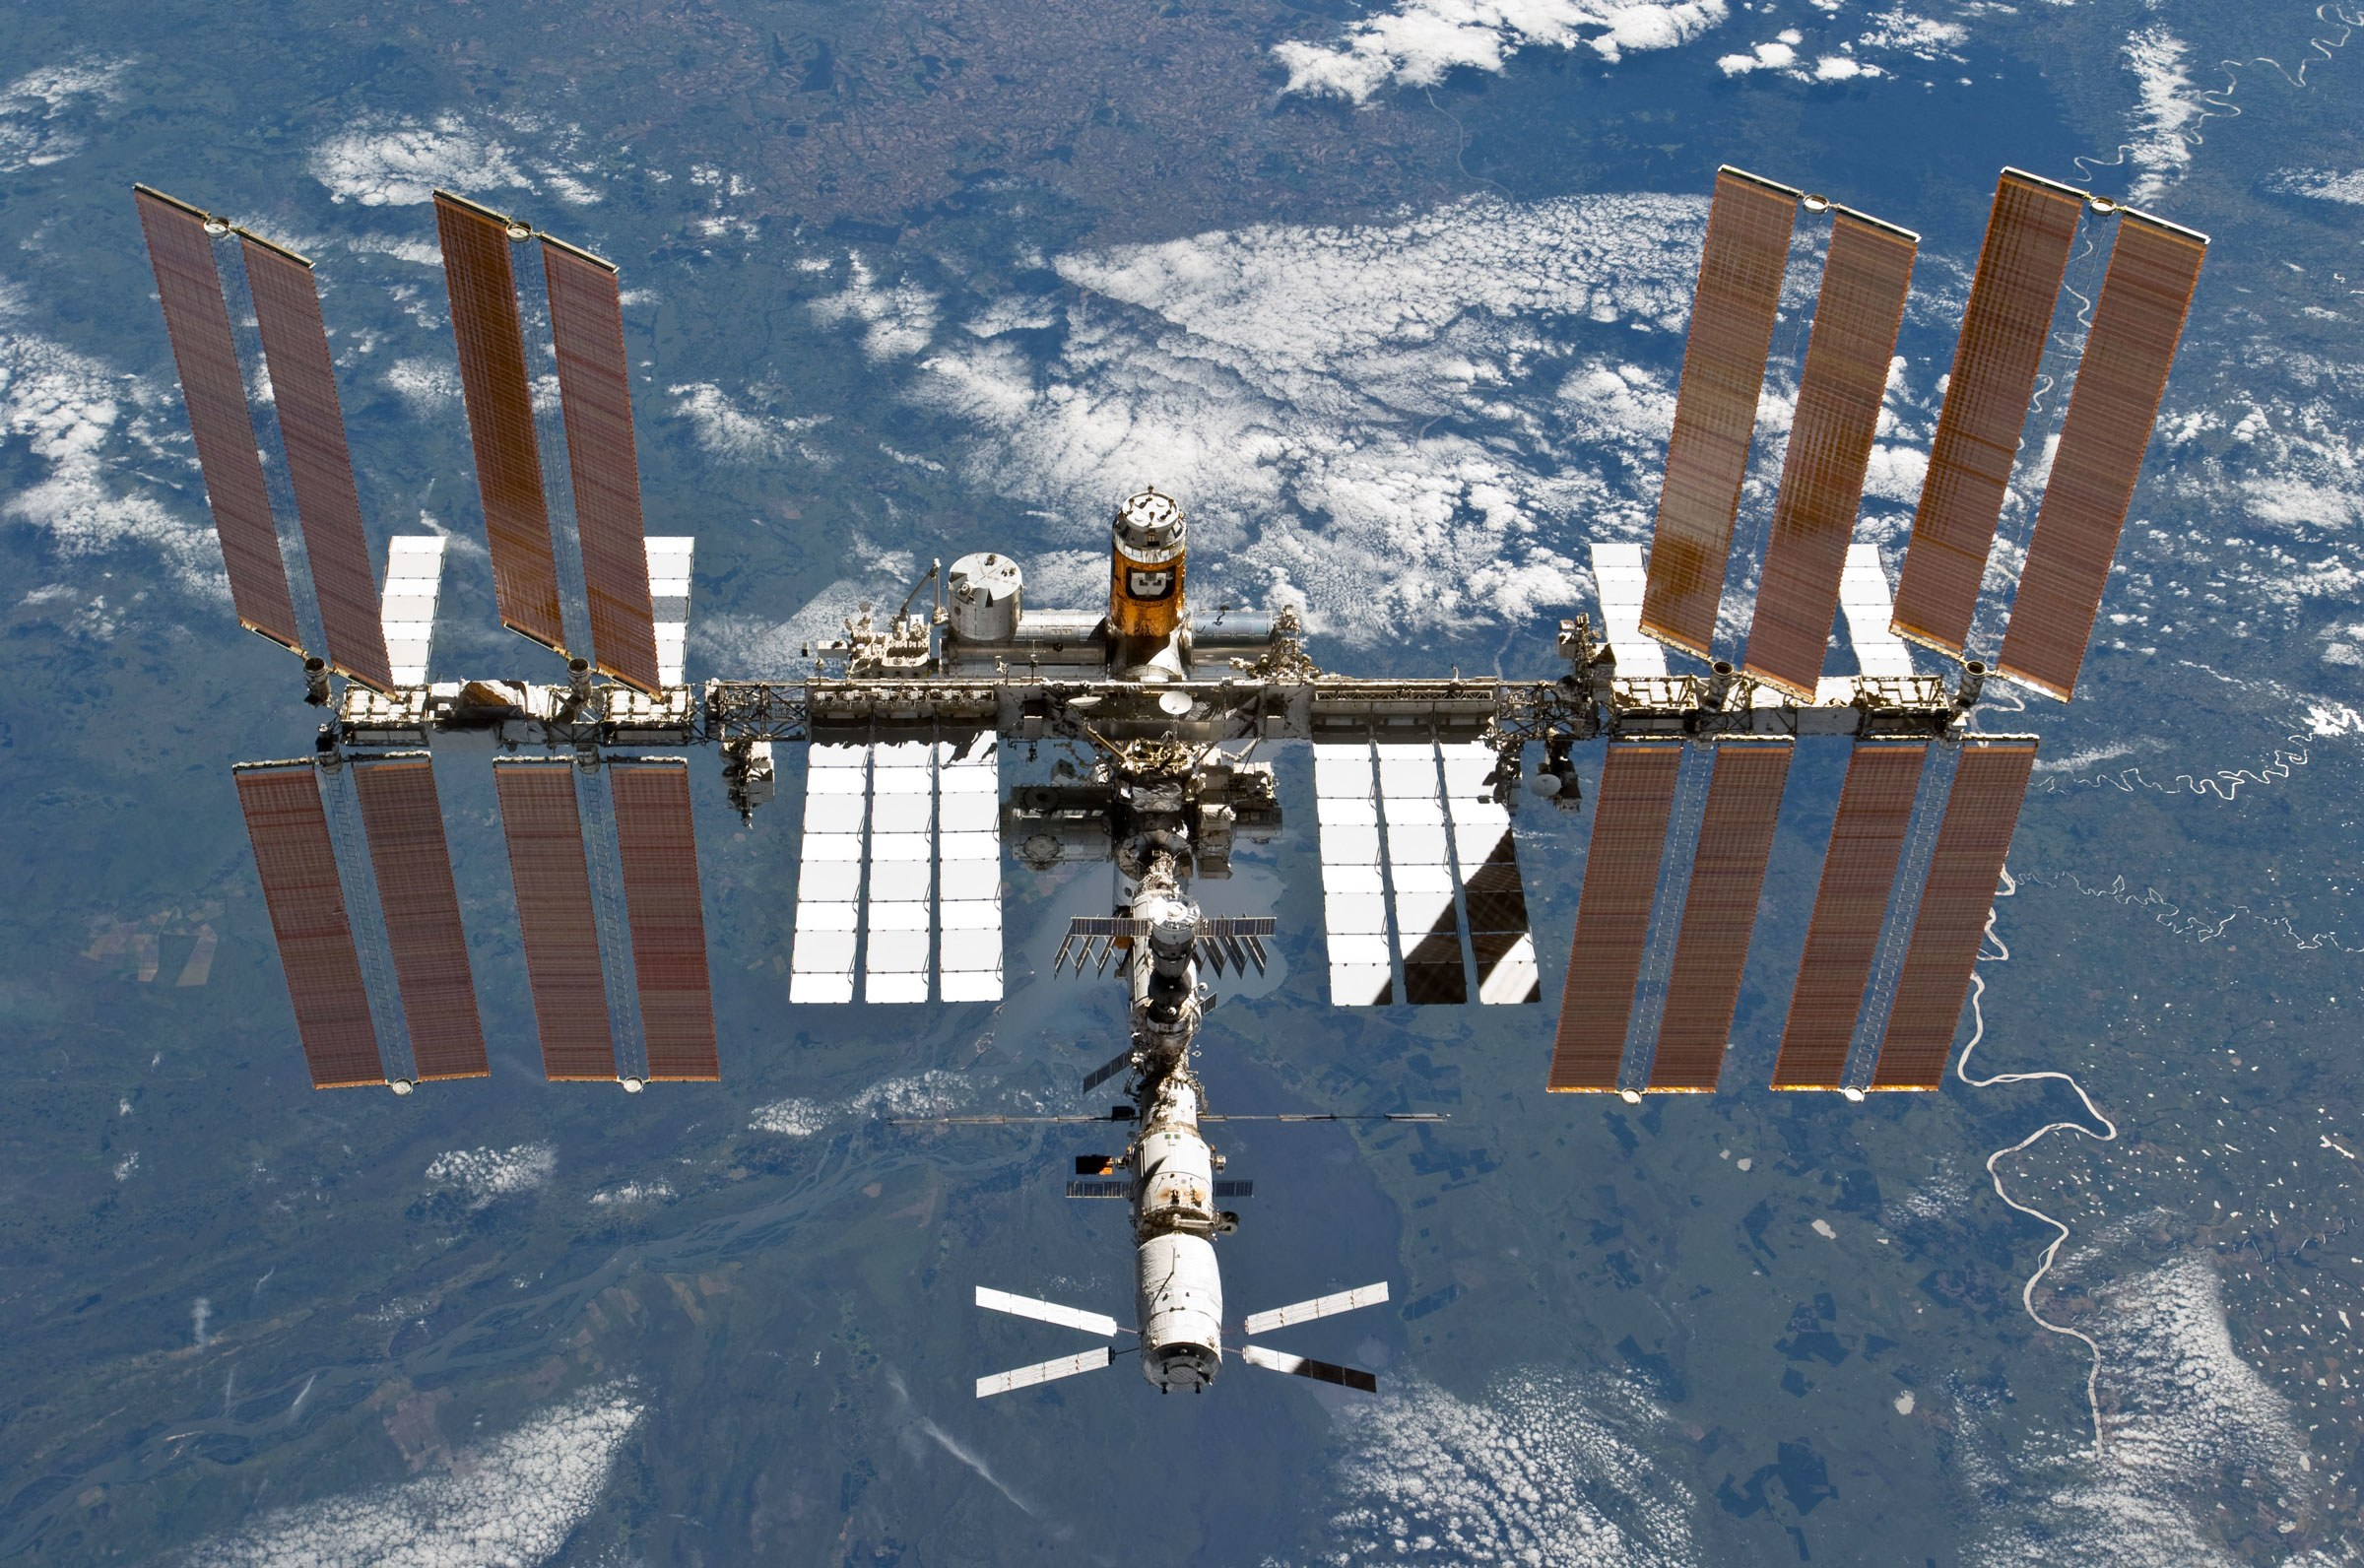 Hardy Diagnostics aboard the ISS!